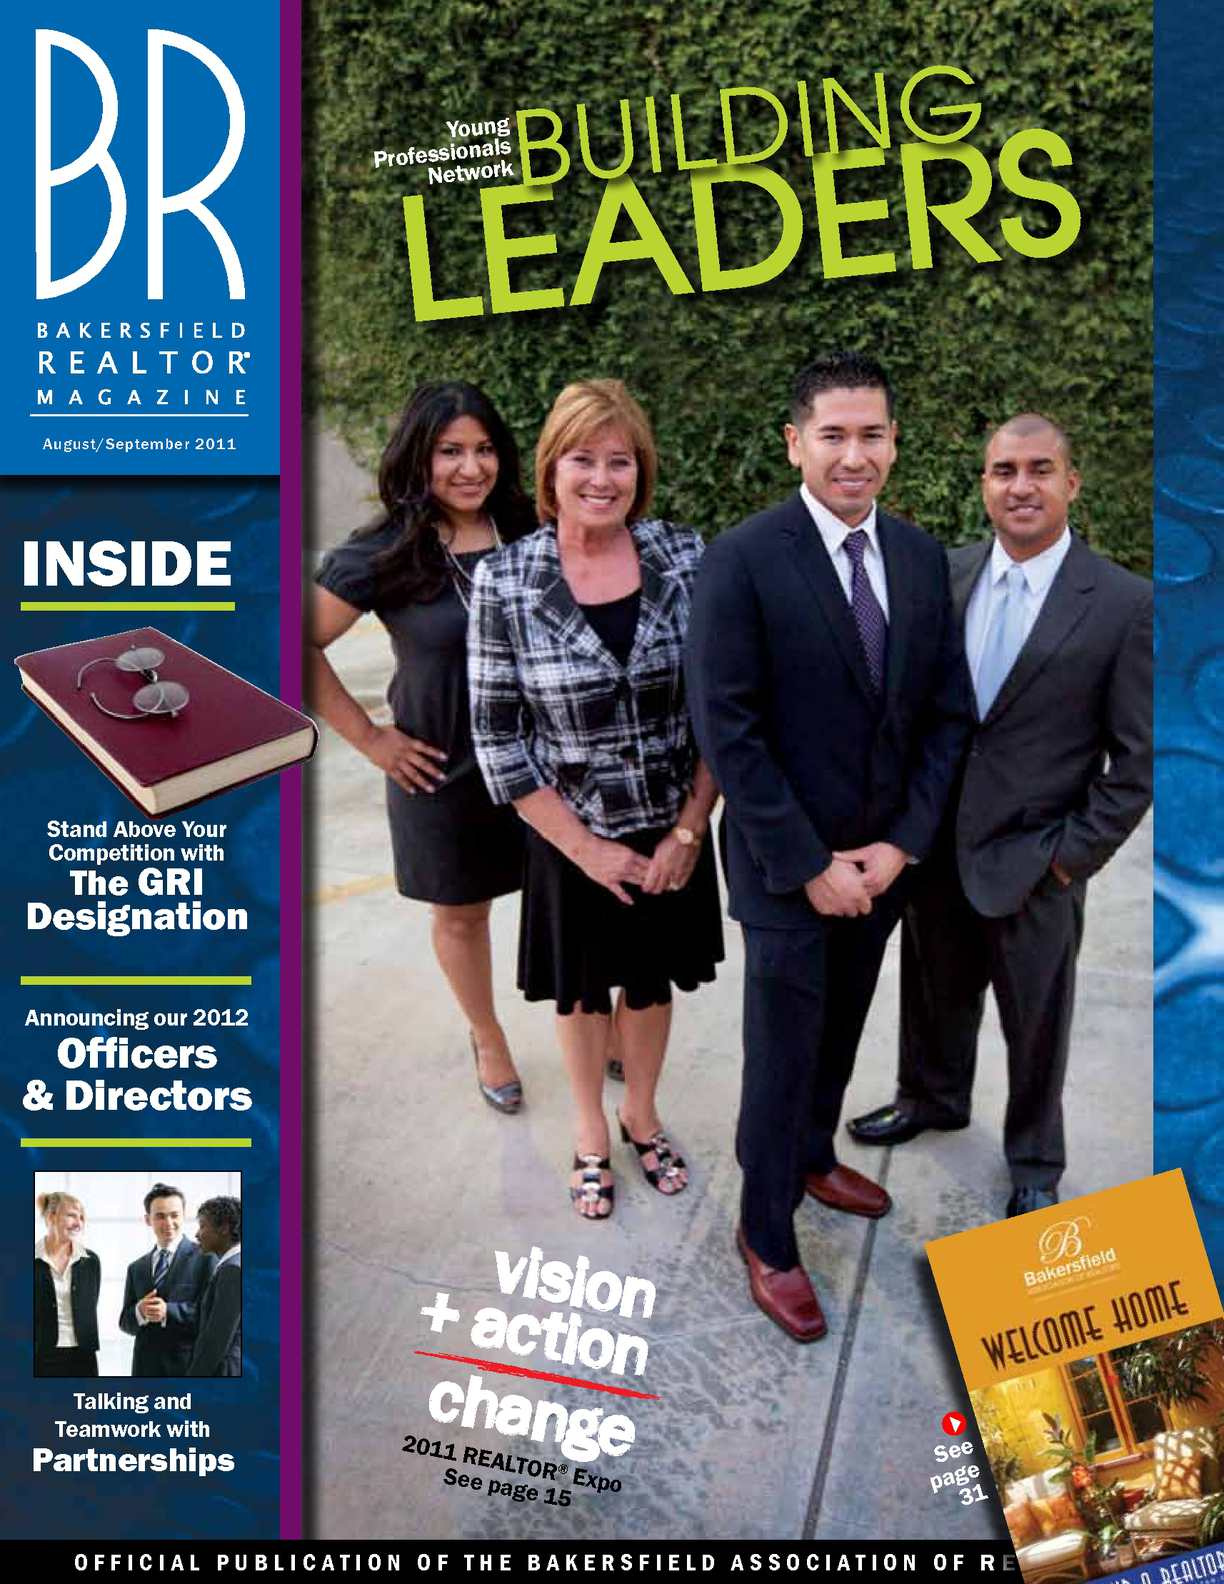 Calaméo - Bakersfield REALTOR® Magazine August/September 2011